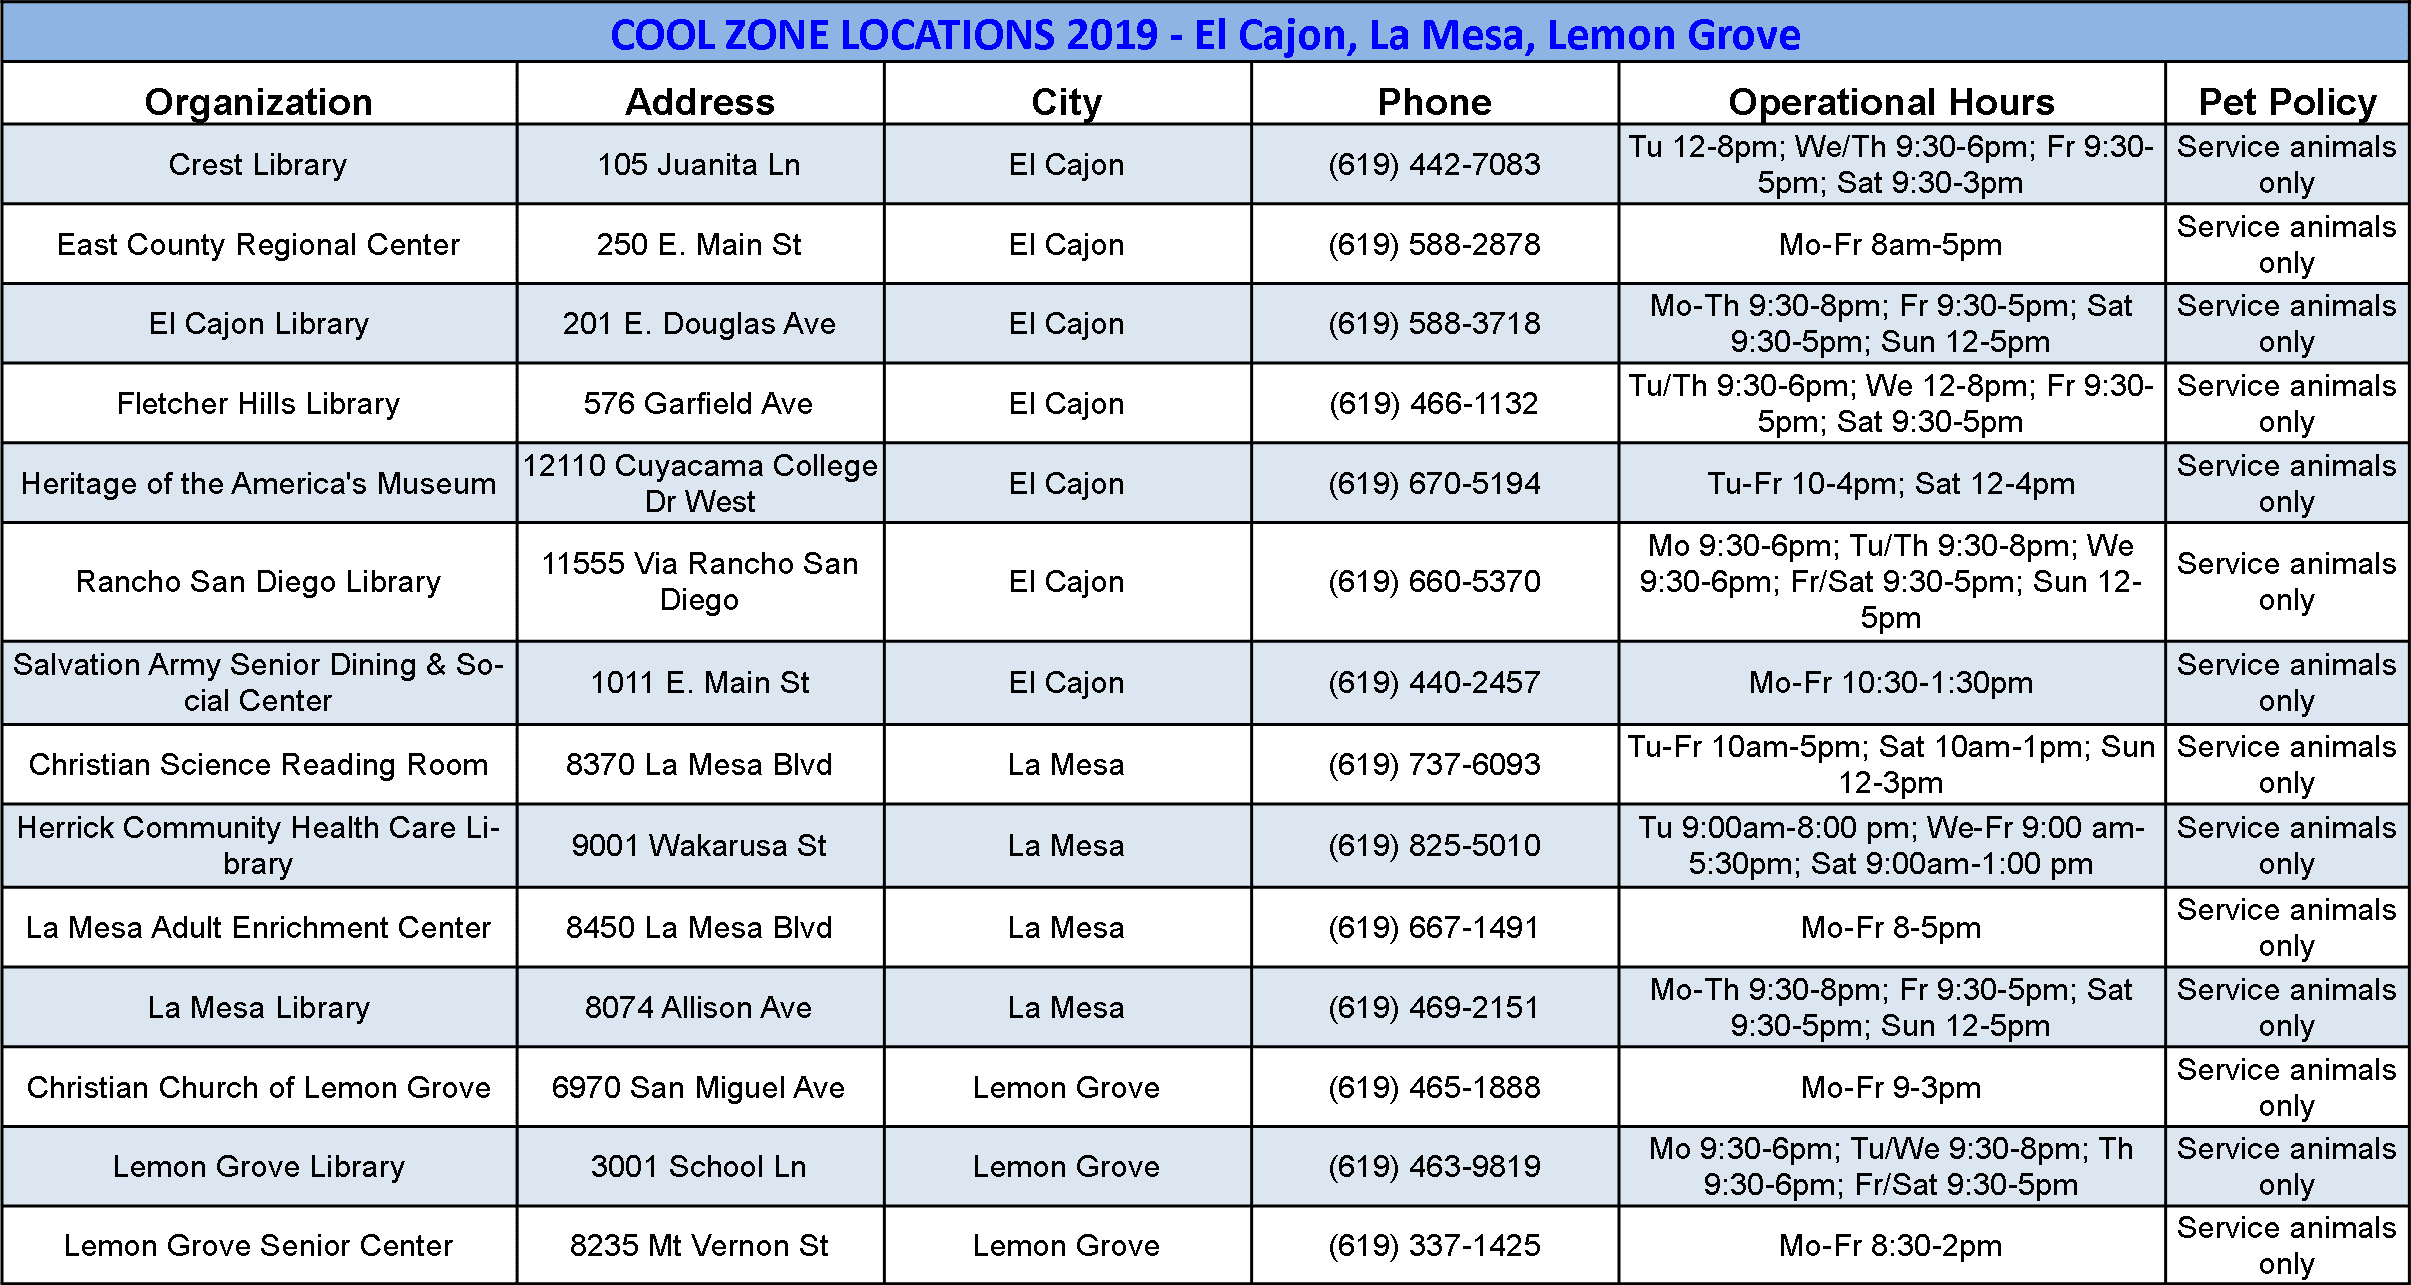 Cool Zone Locations - Heartland Fire Cities